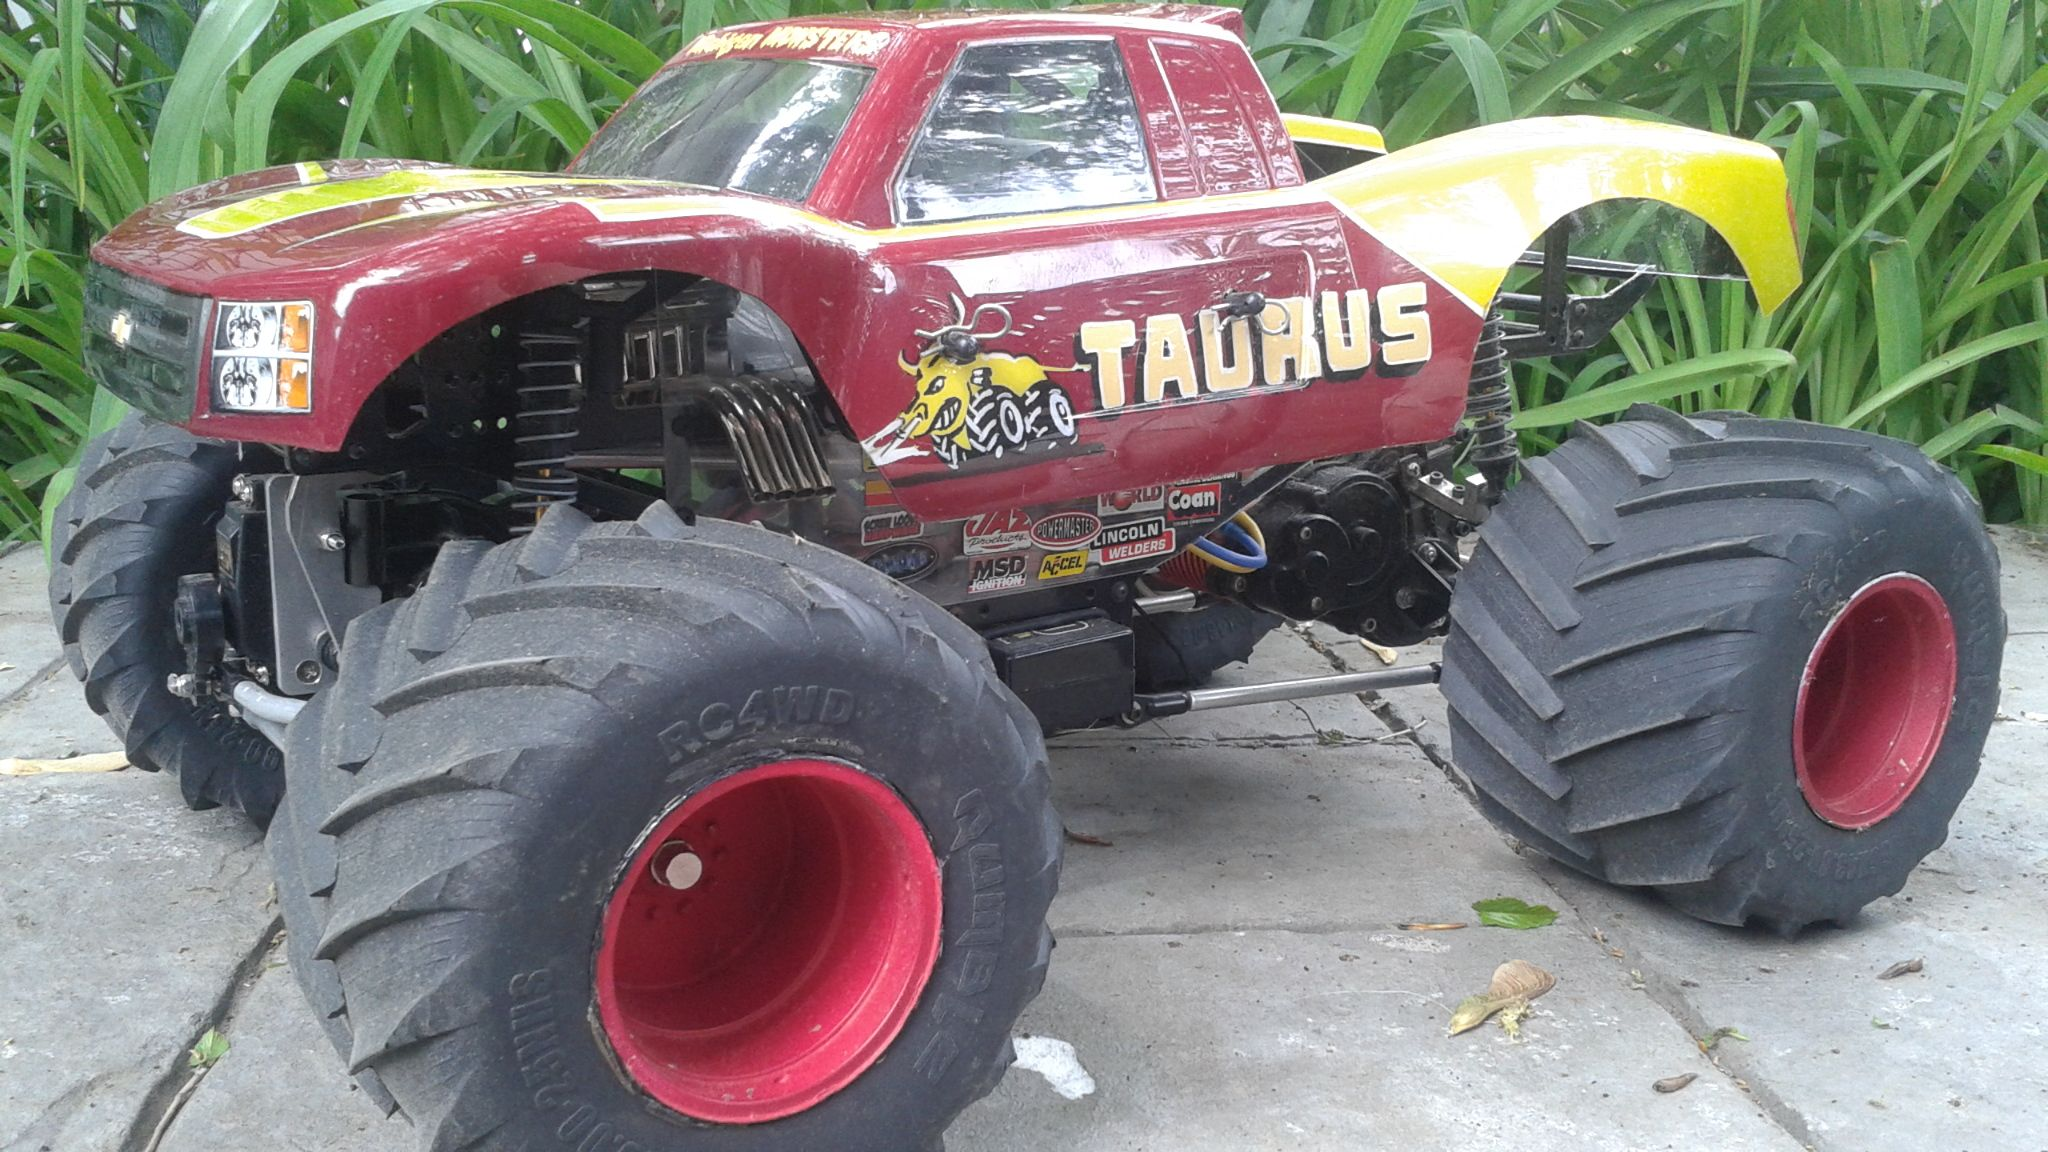 Tamiya Clod Buster CAD Custom by Danielle Colen [Reader s Ride] · Rc